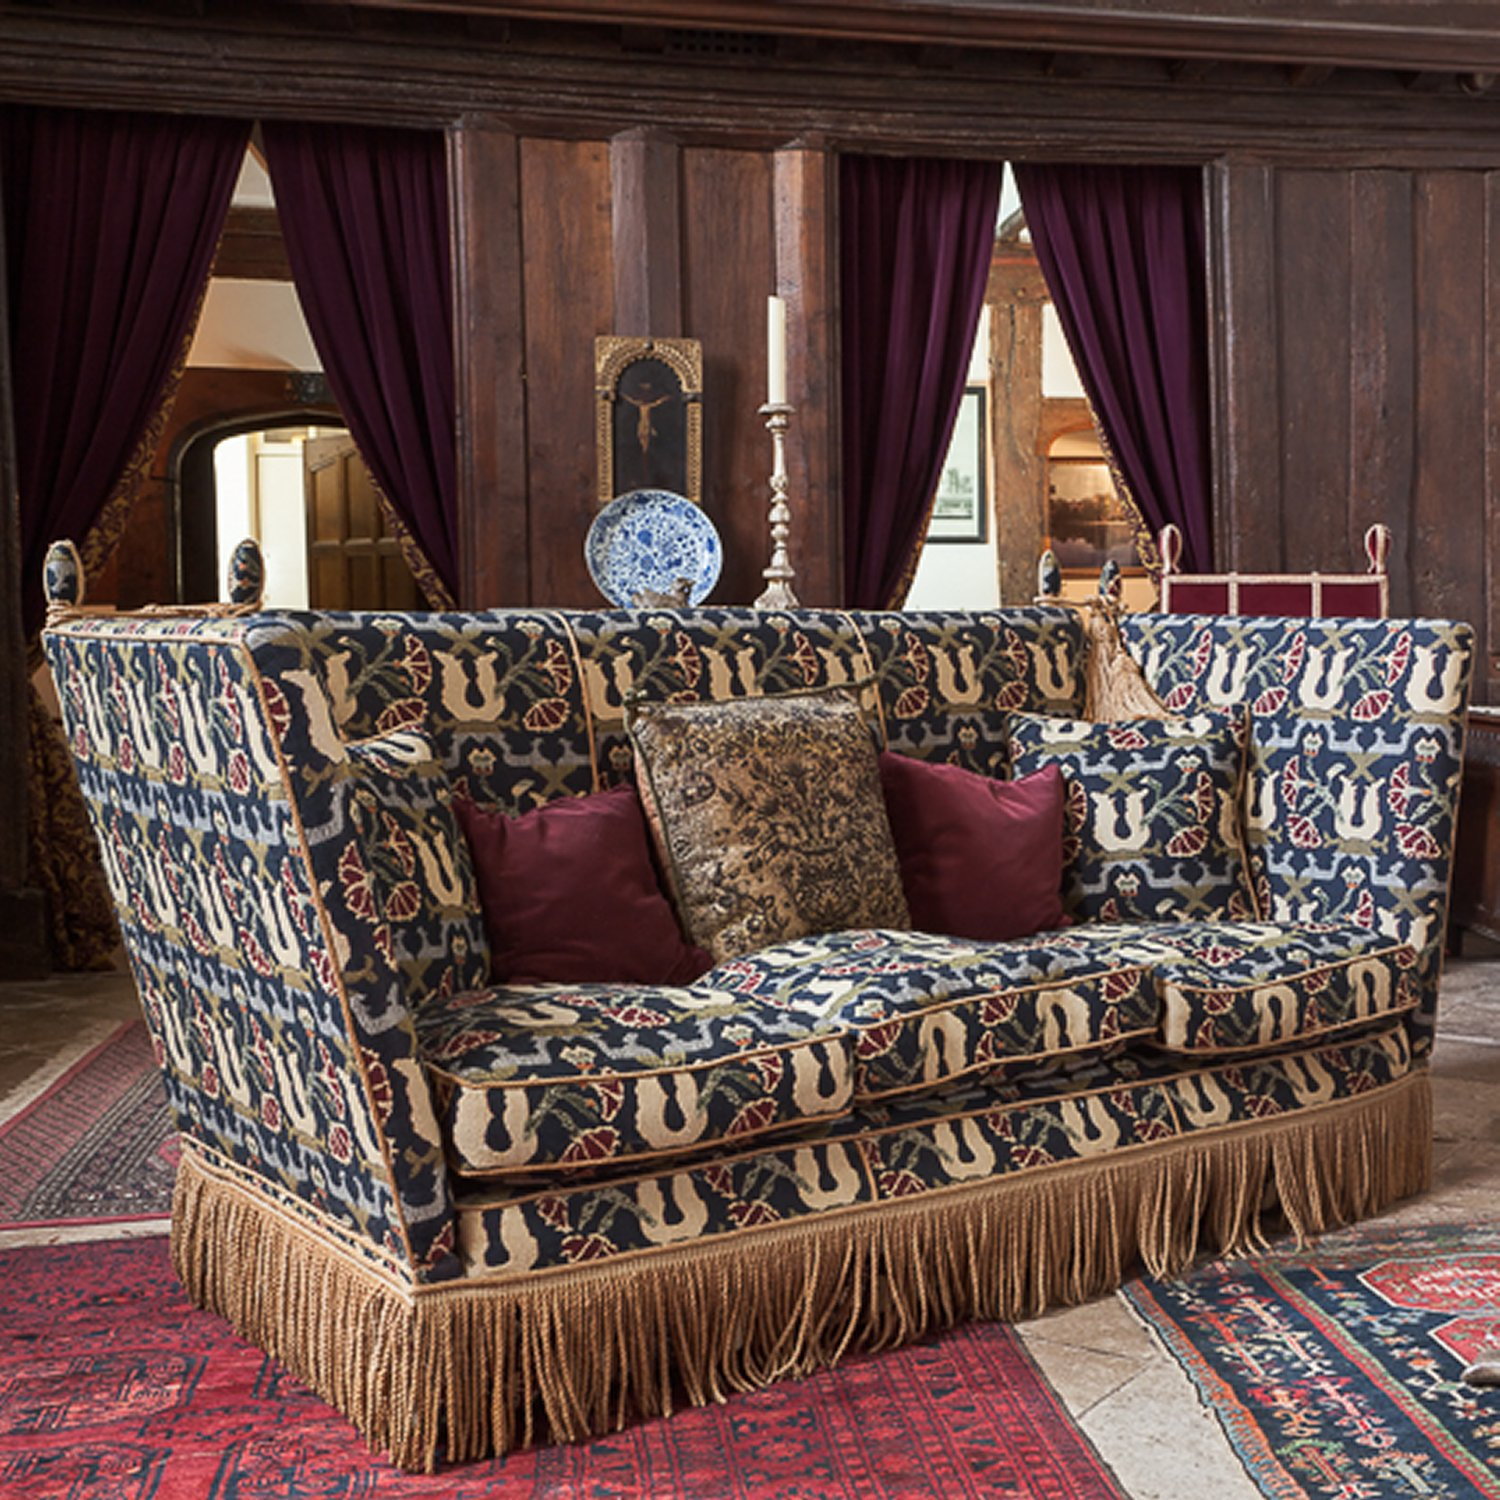 Knole Settee in 'Pomegranate' for the Great Hall